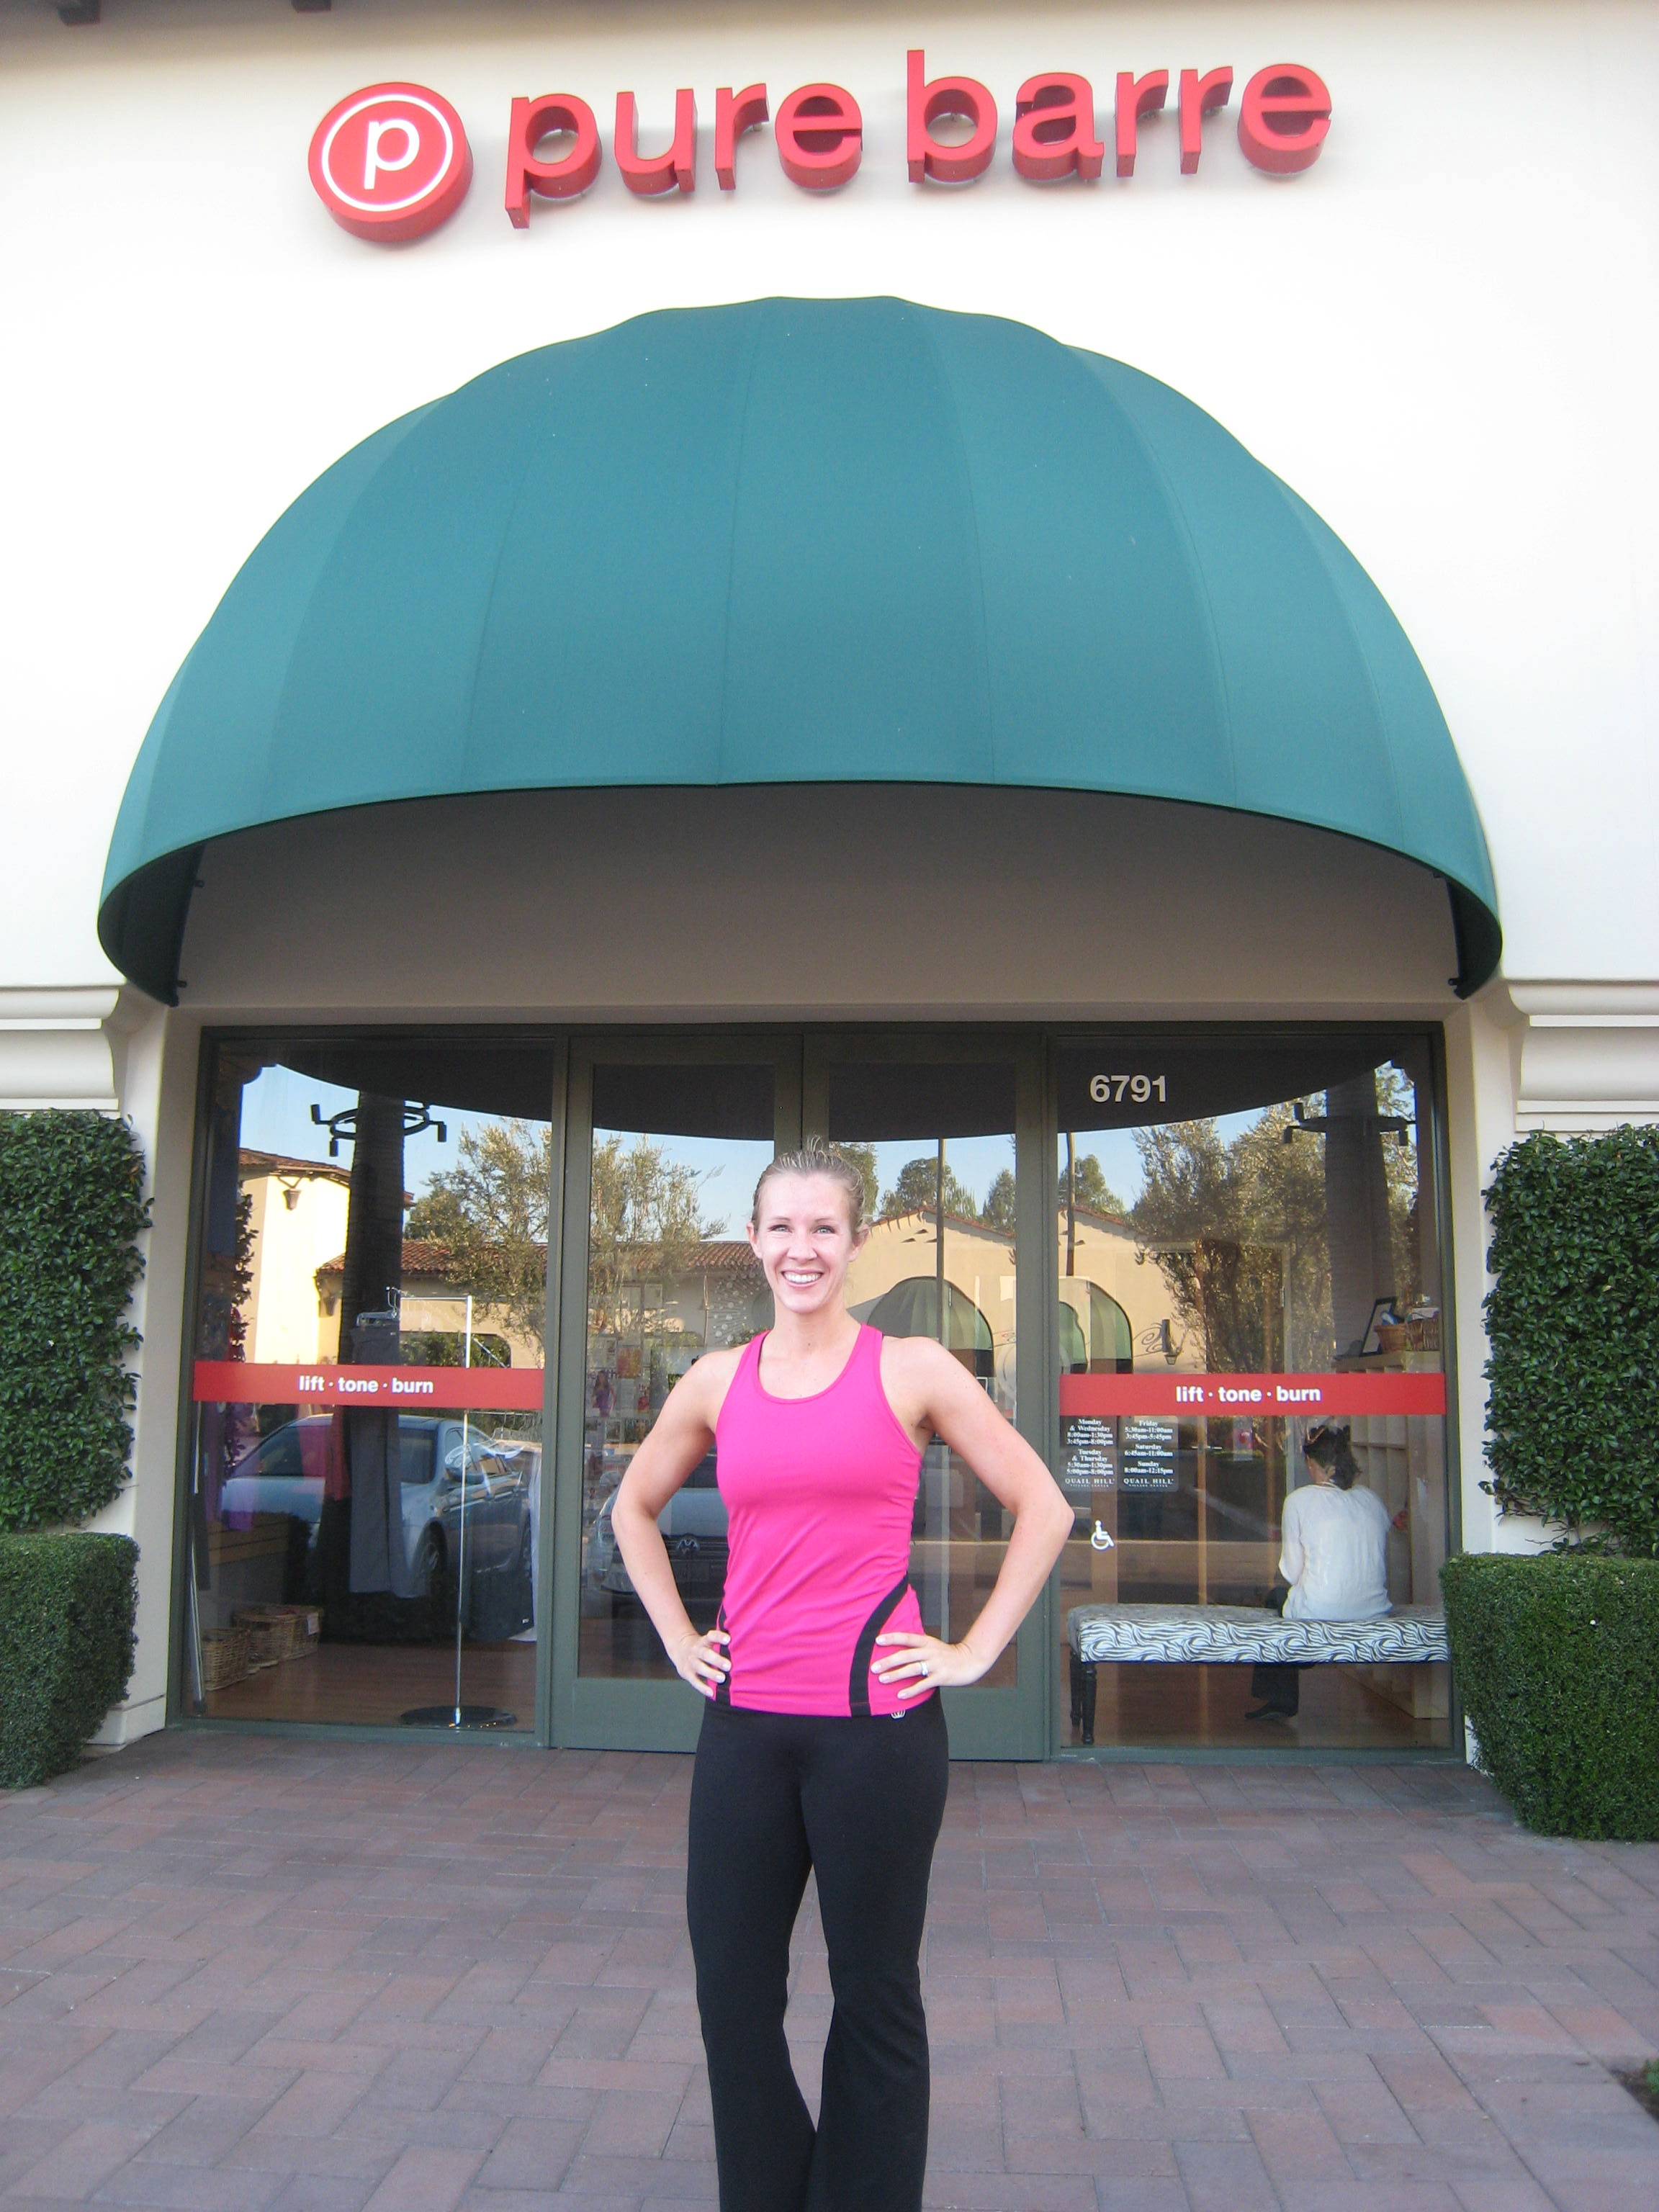 Pure barre shaped for fitness pure barre xflitez Gallery